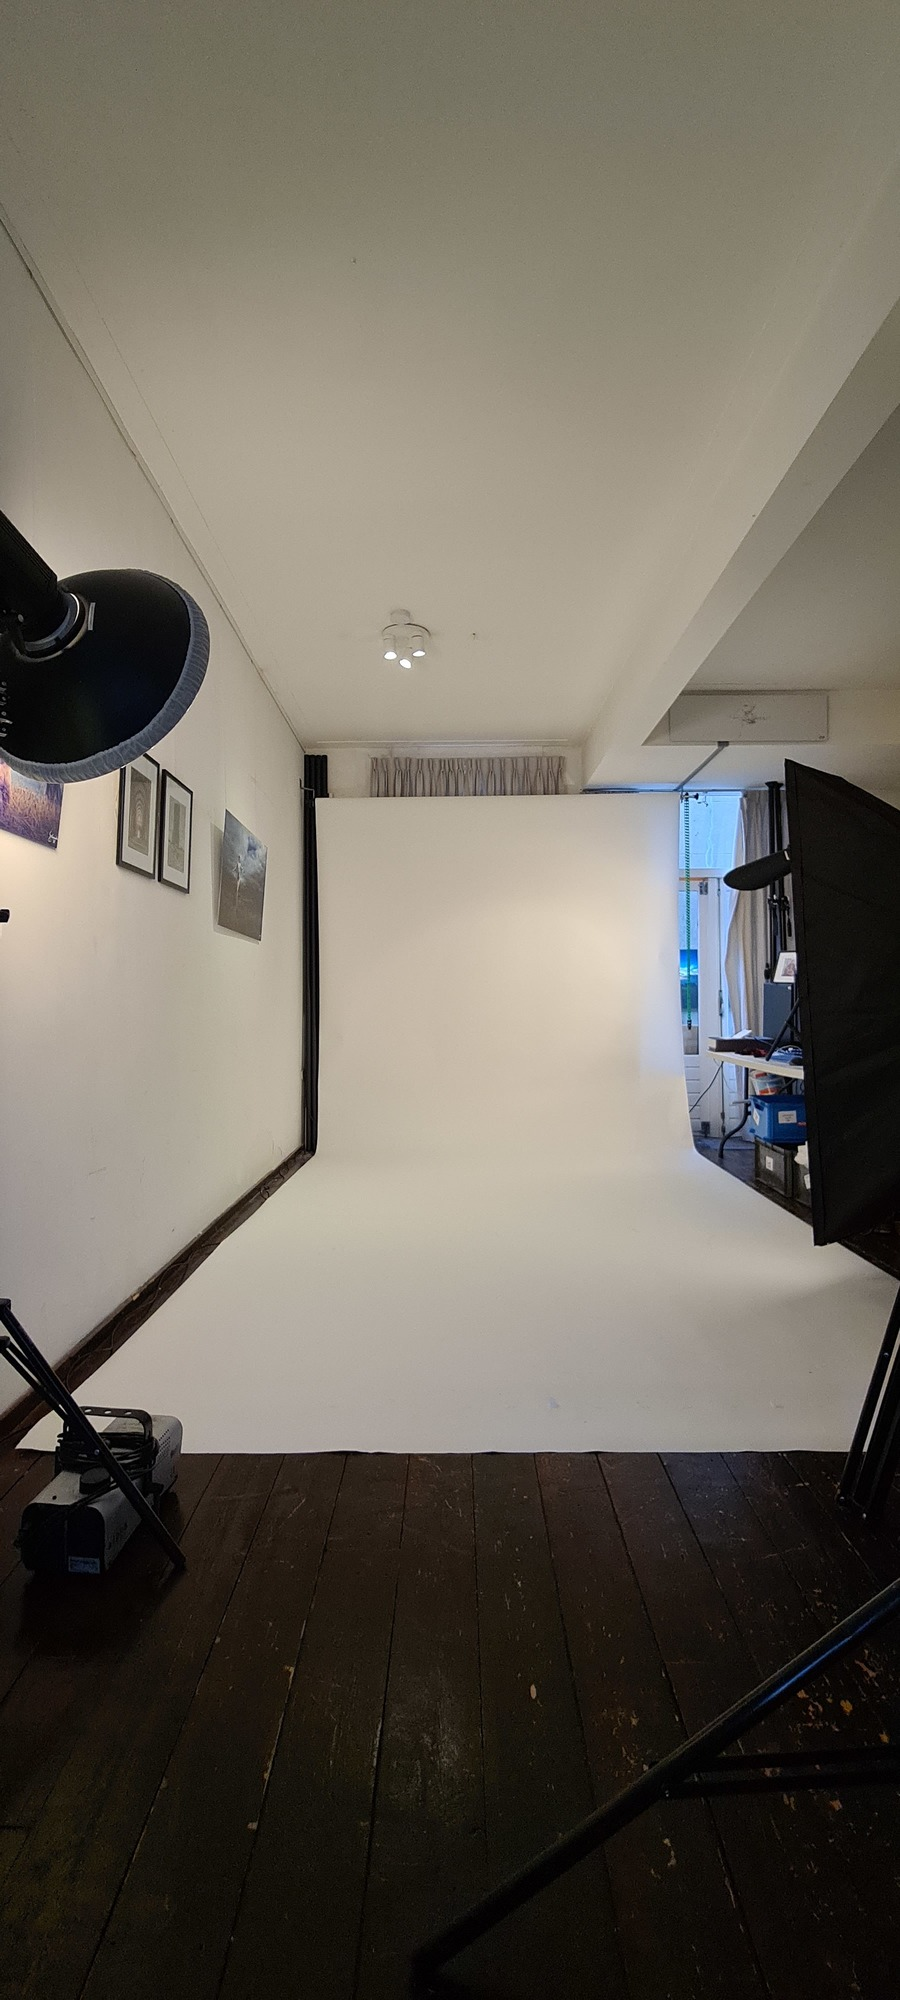 Our new studio / Photography by Sybarite / Uploaded 5th September 2021 @ 10:44 AM